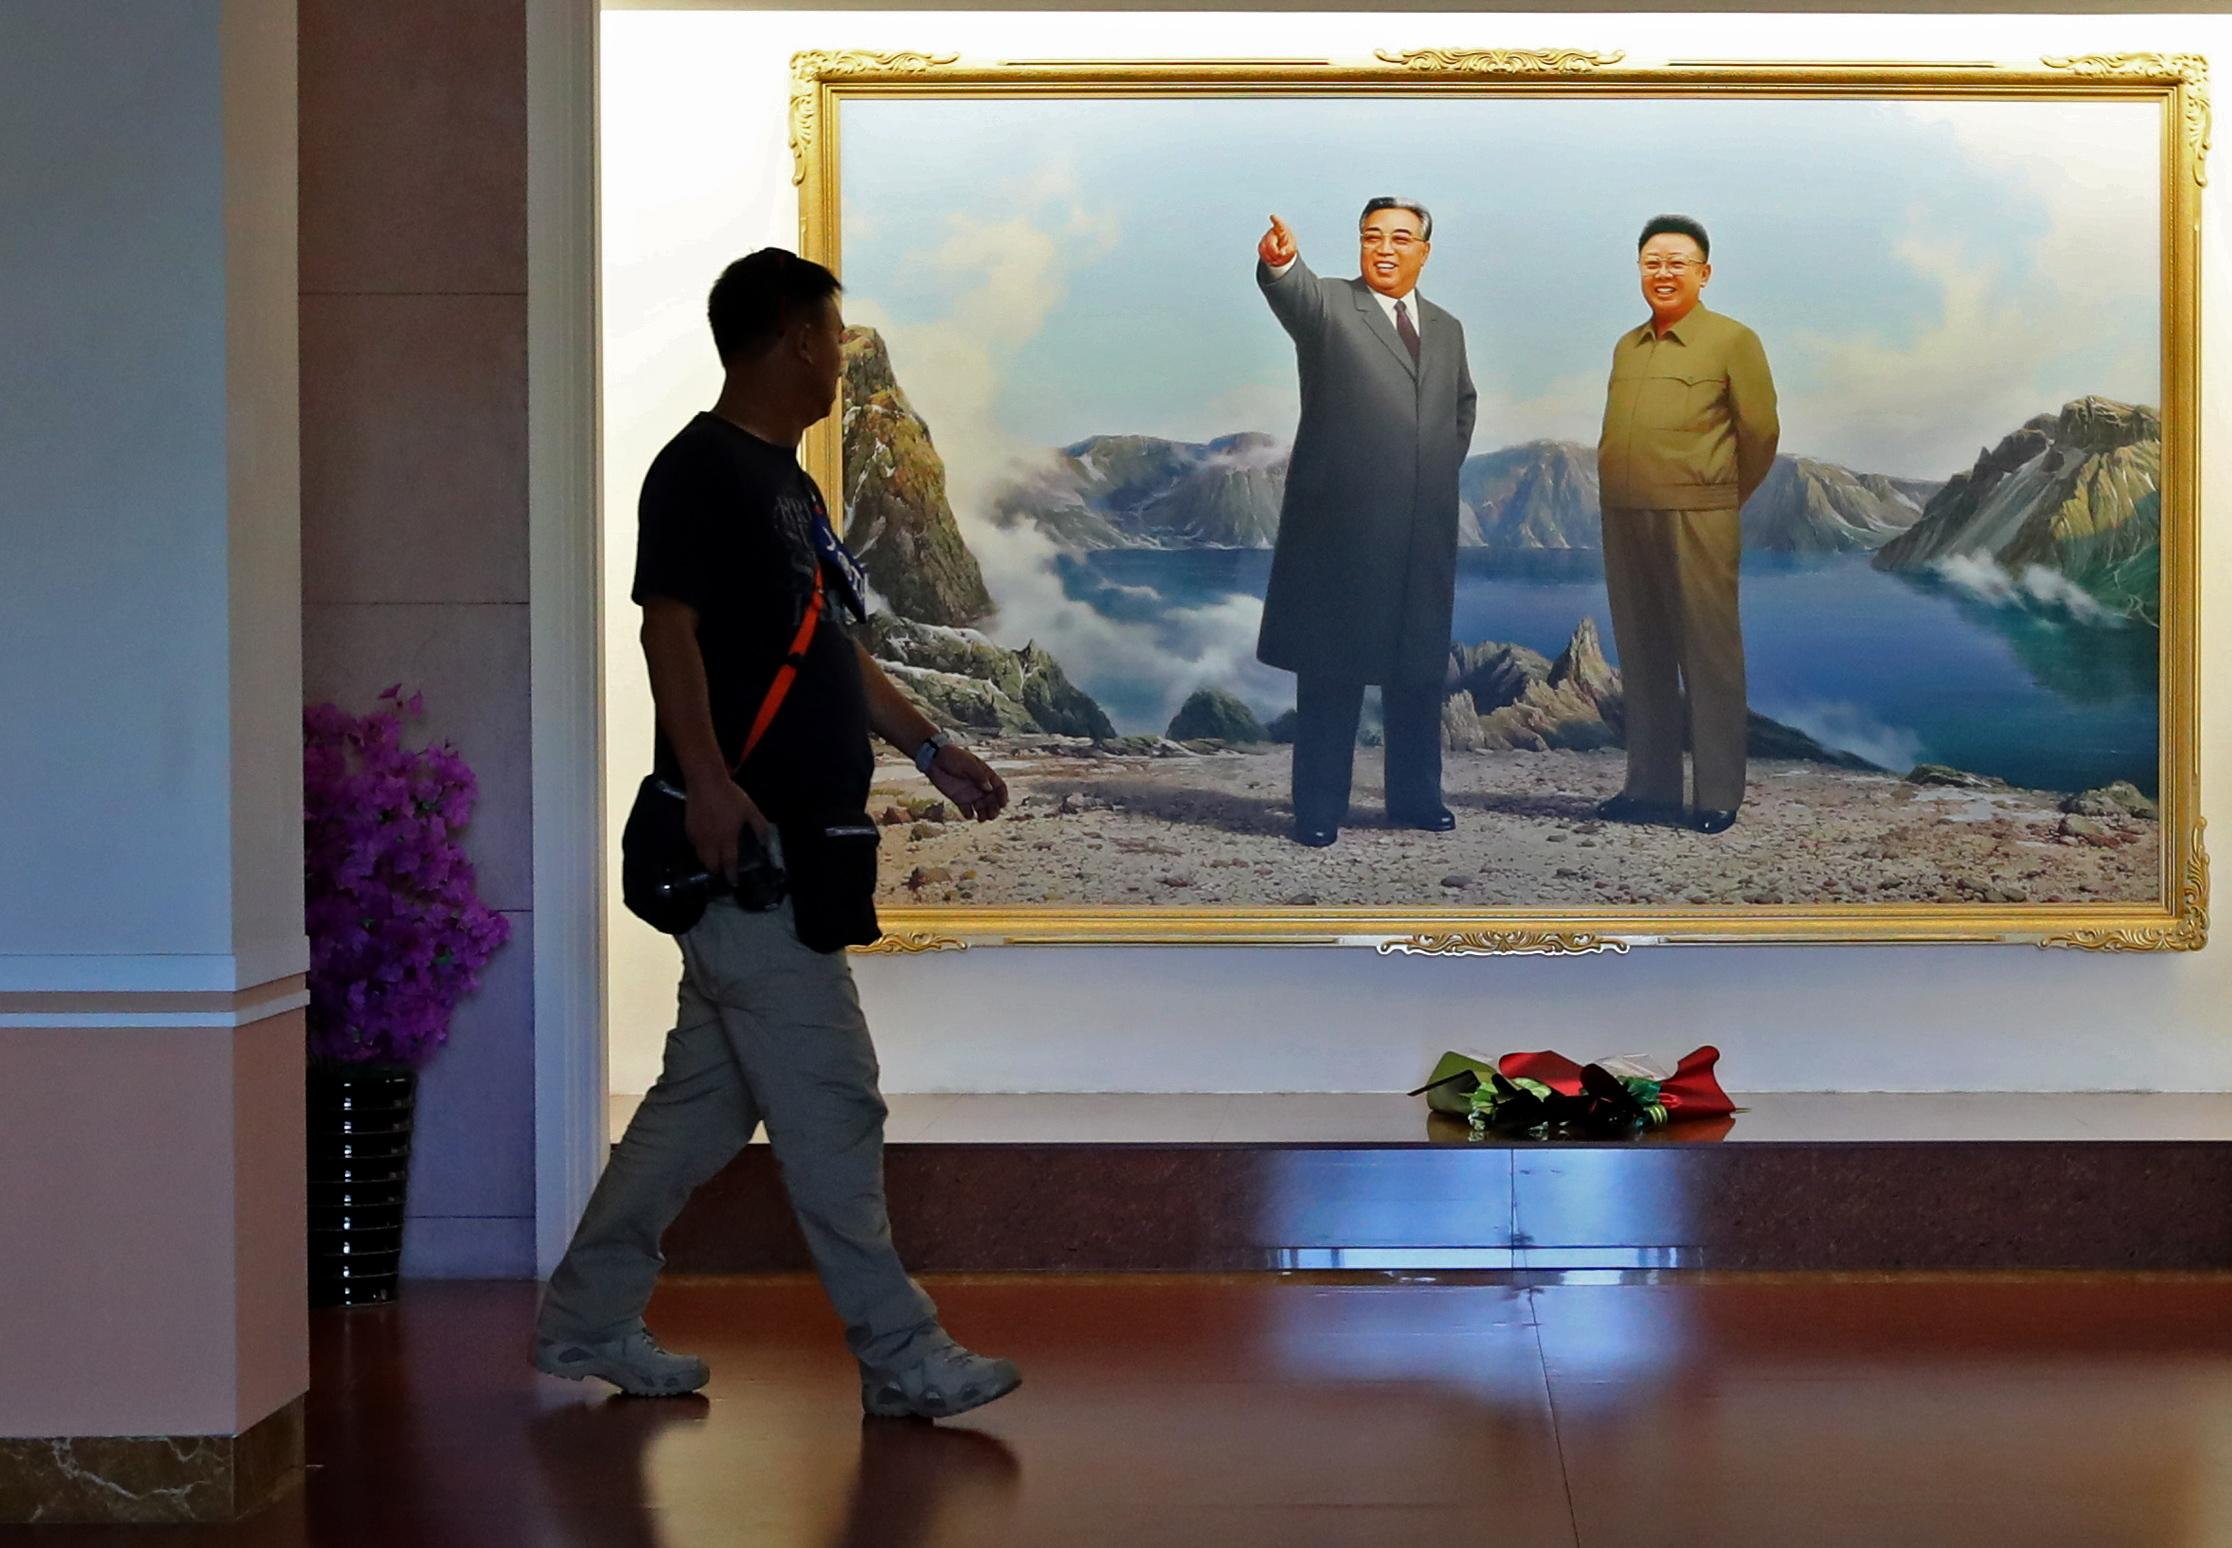 PYONGYANG, NORTH KOREA - SEPTEMBER 7, 2018: Portraits of former North Korean leaders Kim Il-sung (L) and Kim Jong-il on display inside a cosmetics factory building in Pyongyang. Alexander Demianchuk/TASS (Photo by Alexander Demianchuk\TASS via Getty Images)